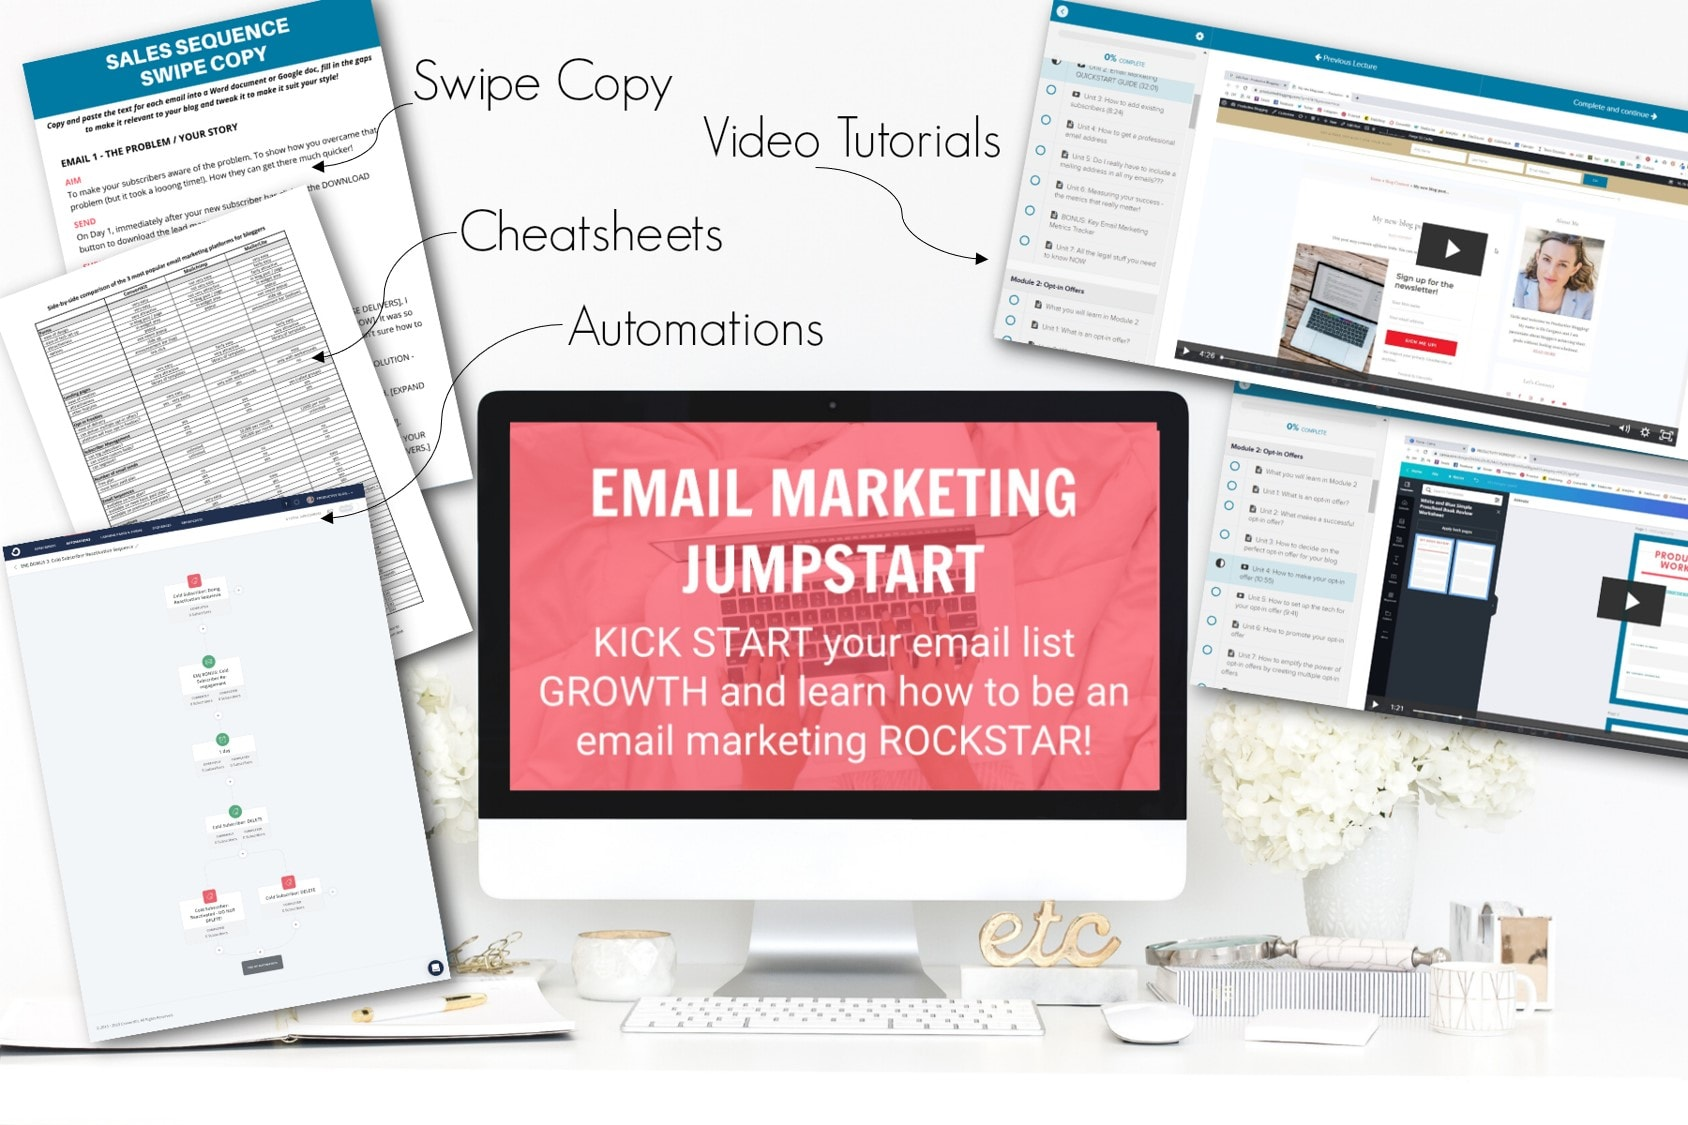 Computer Mockup showing the Email Marketing Jumpstart course on the screen with images of swipe copy, cheatsheers, automations and tech tutorials surrounding it